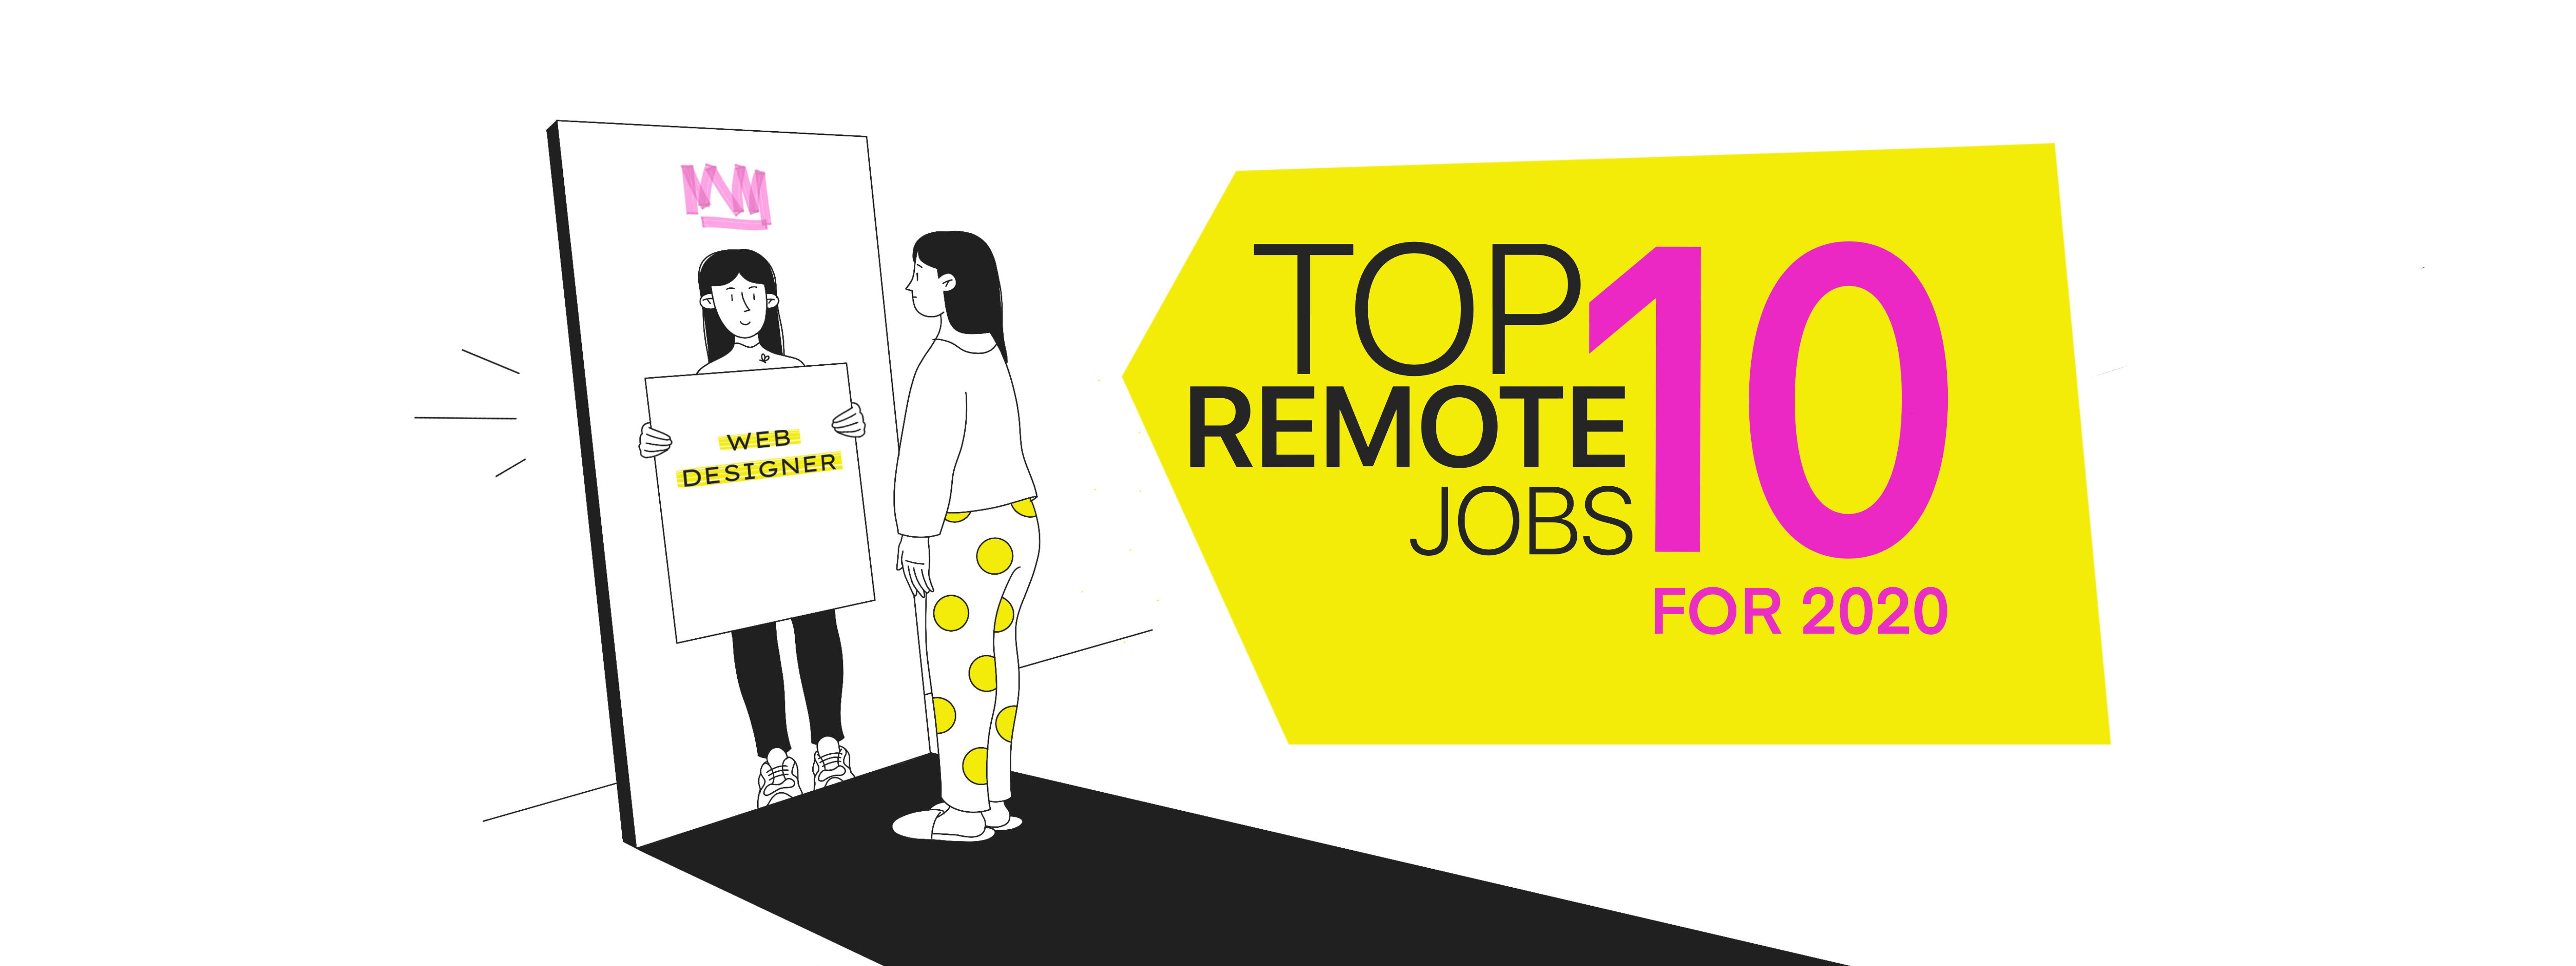 The top 10 remote jobs for 2020